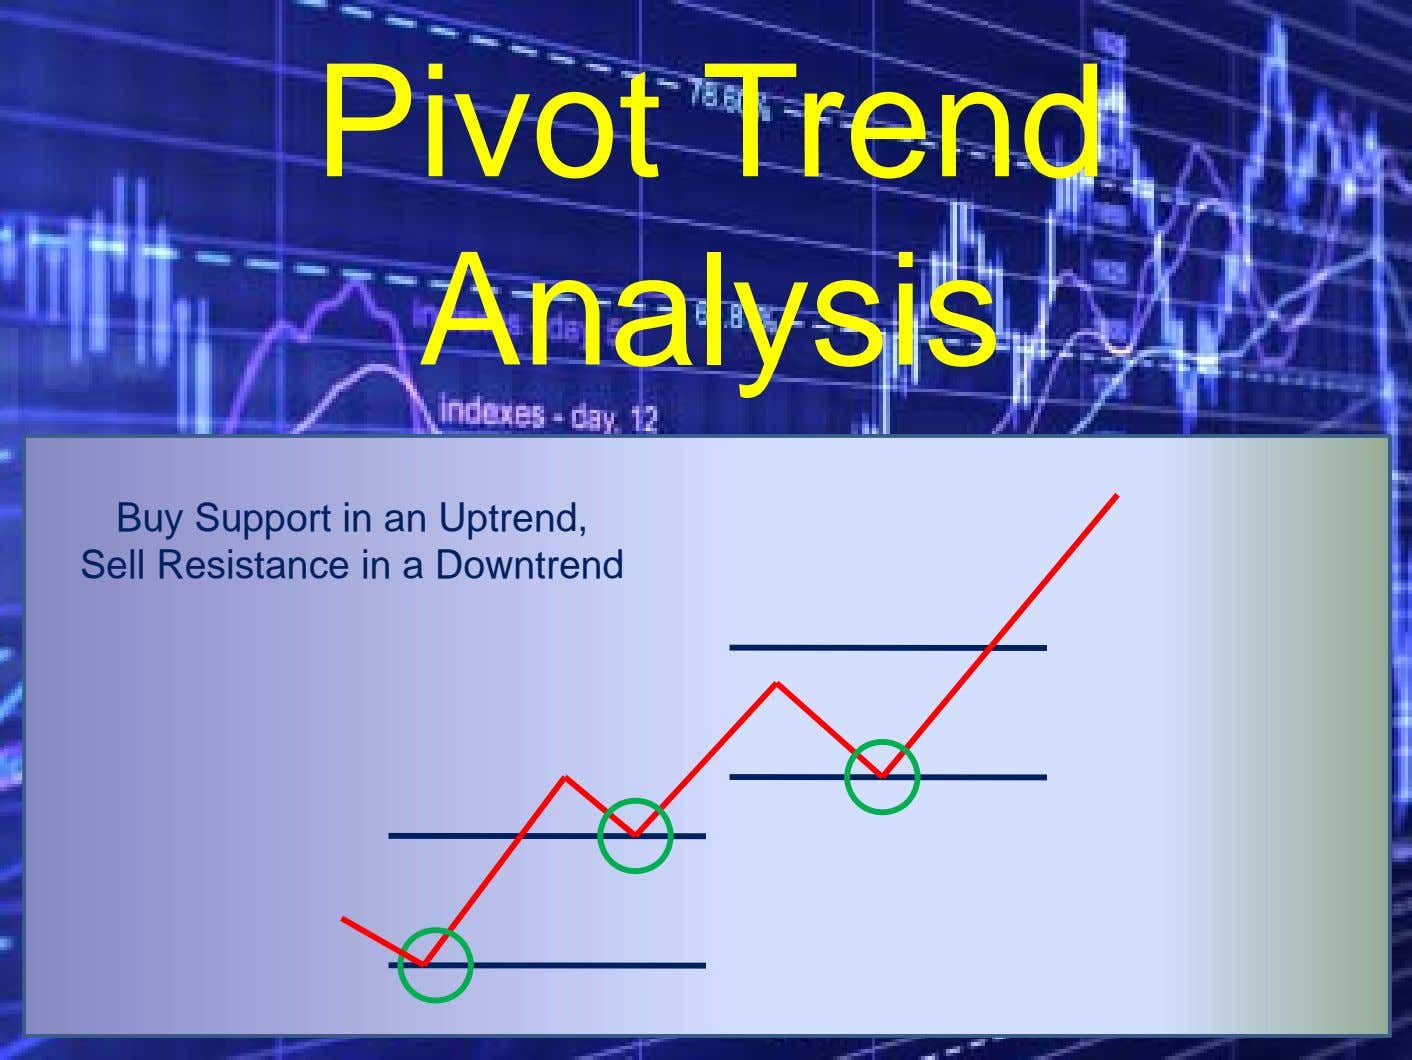 Pivot Trend Analysis Buy Support in an Uptrend, Sell Resistance in a Downtrend